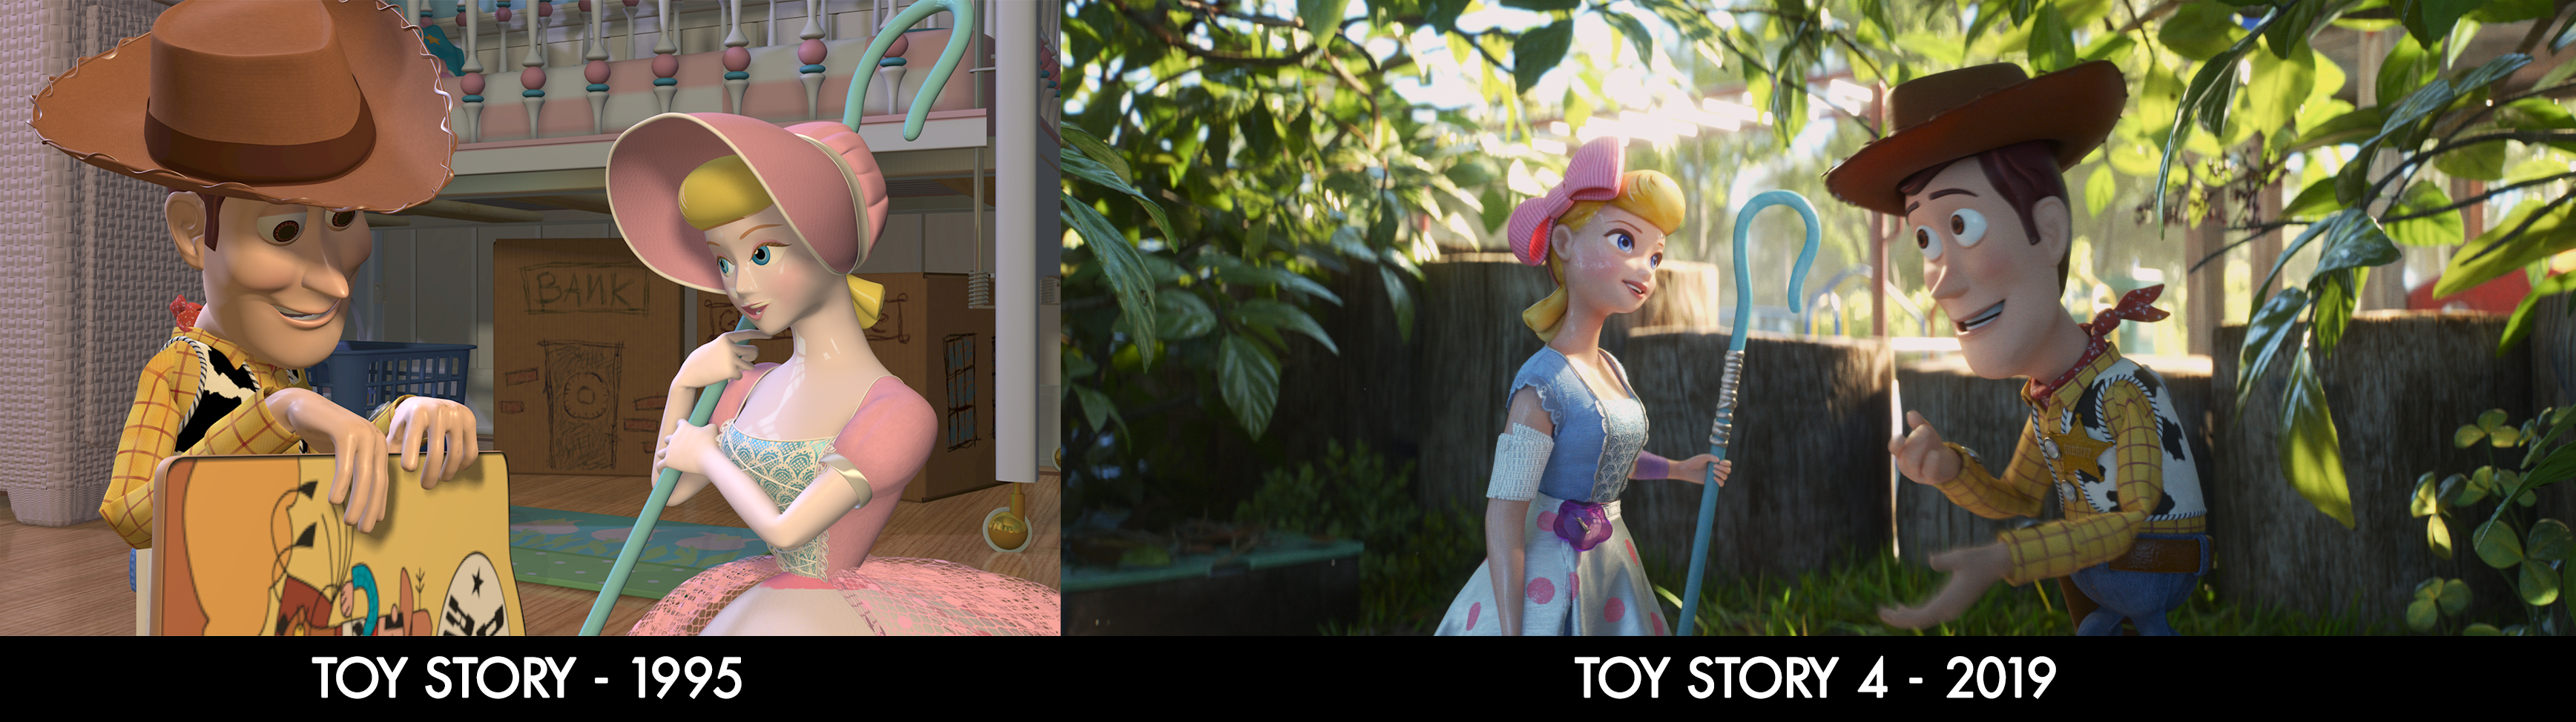 "THEN AND NOW – Filmmakers behind ""Toy Story 4"" were committed to keeping the new film in the same universe as the original ""Toy Story."" But 24 years have passed since ""Toy Story"" debuted and the technology—as well as the experience and knowledge of the people behind it—has advanced lightyears, so to speak. These images showcase those advances in terms of character shapes and textures, rigging, rendering and lighting. Directed by Josh Cooley, ""Toy Story 4"" opens in U.S. theaters on June 21, 2019. ©2019 Disney/Pixar. All Rights Reserved."